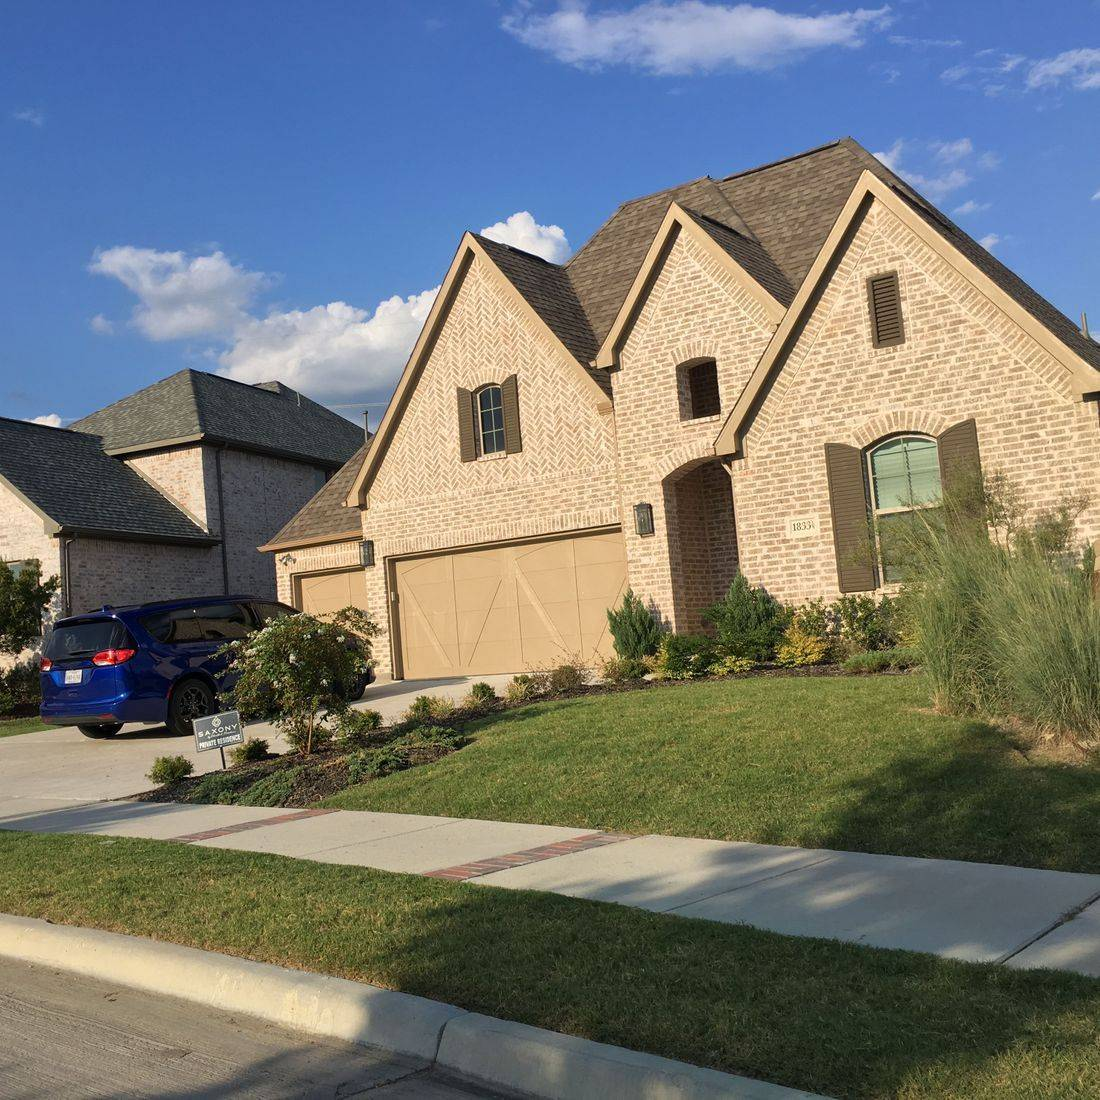 BELLAS LAWN CARE WYLIE TEXAS 75098